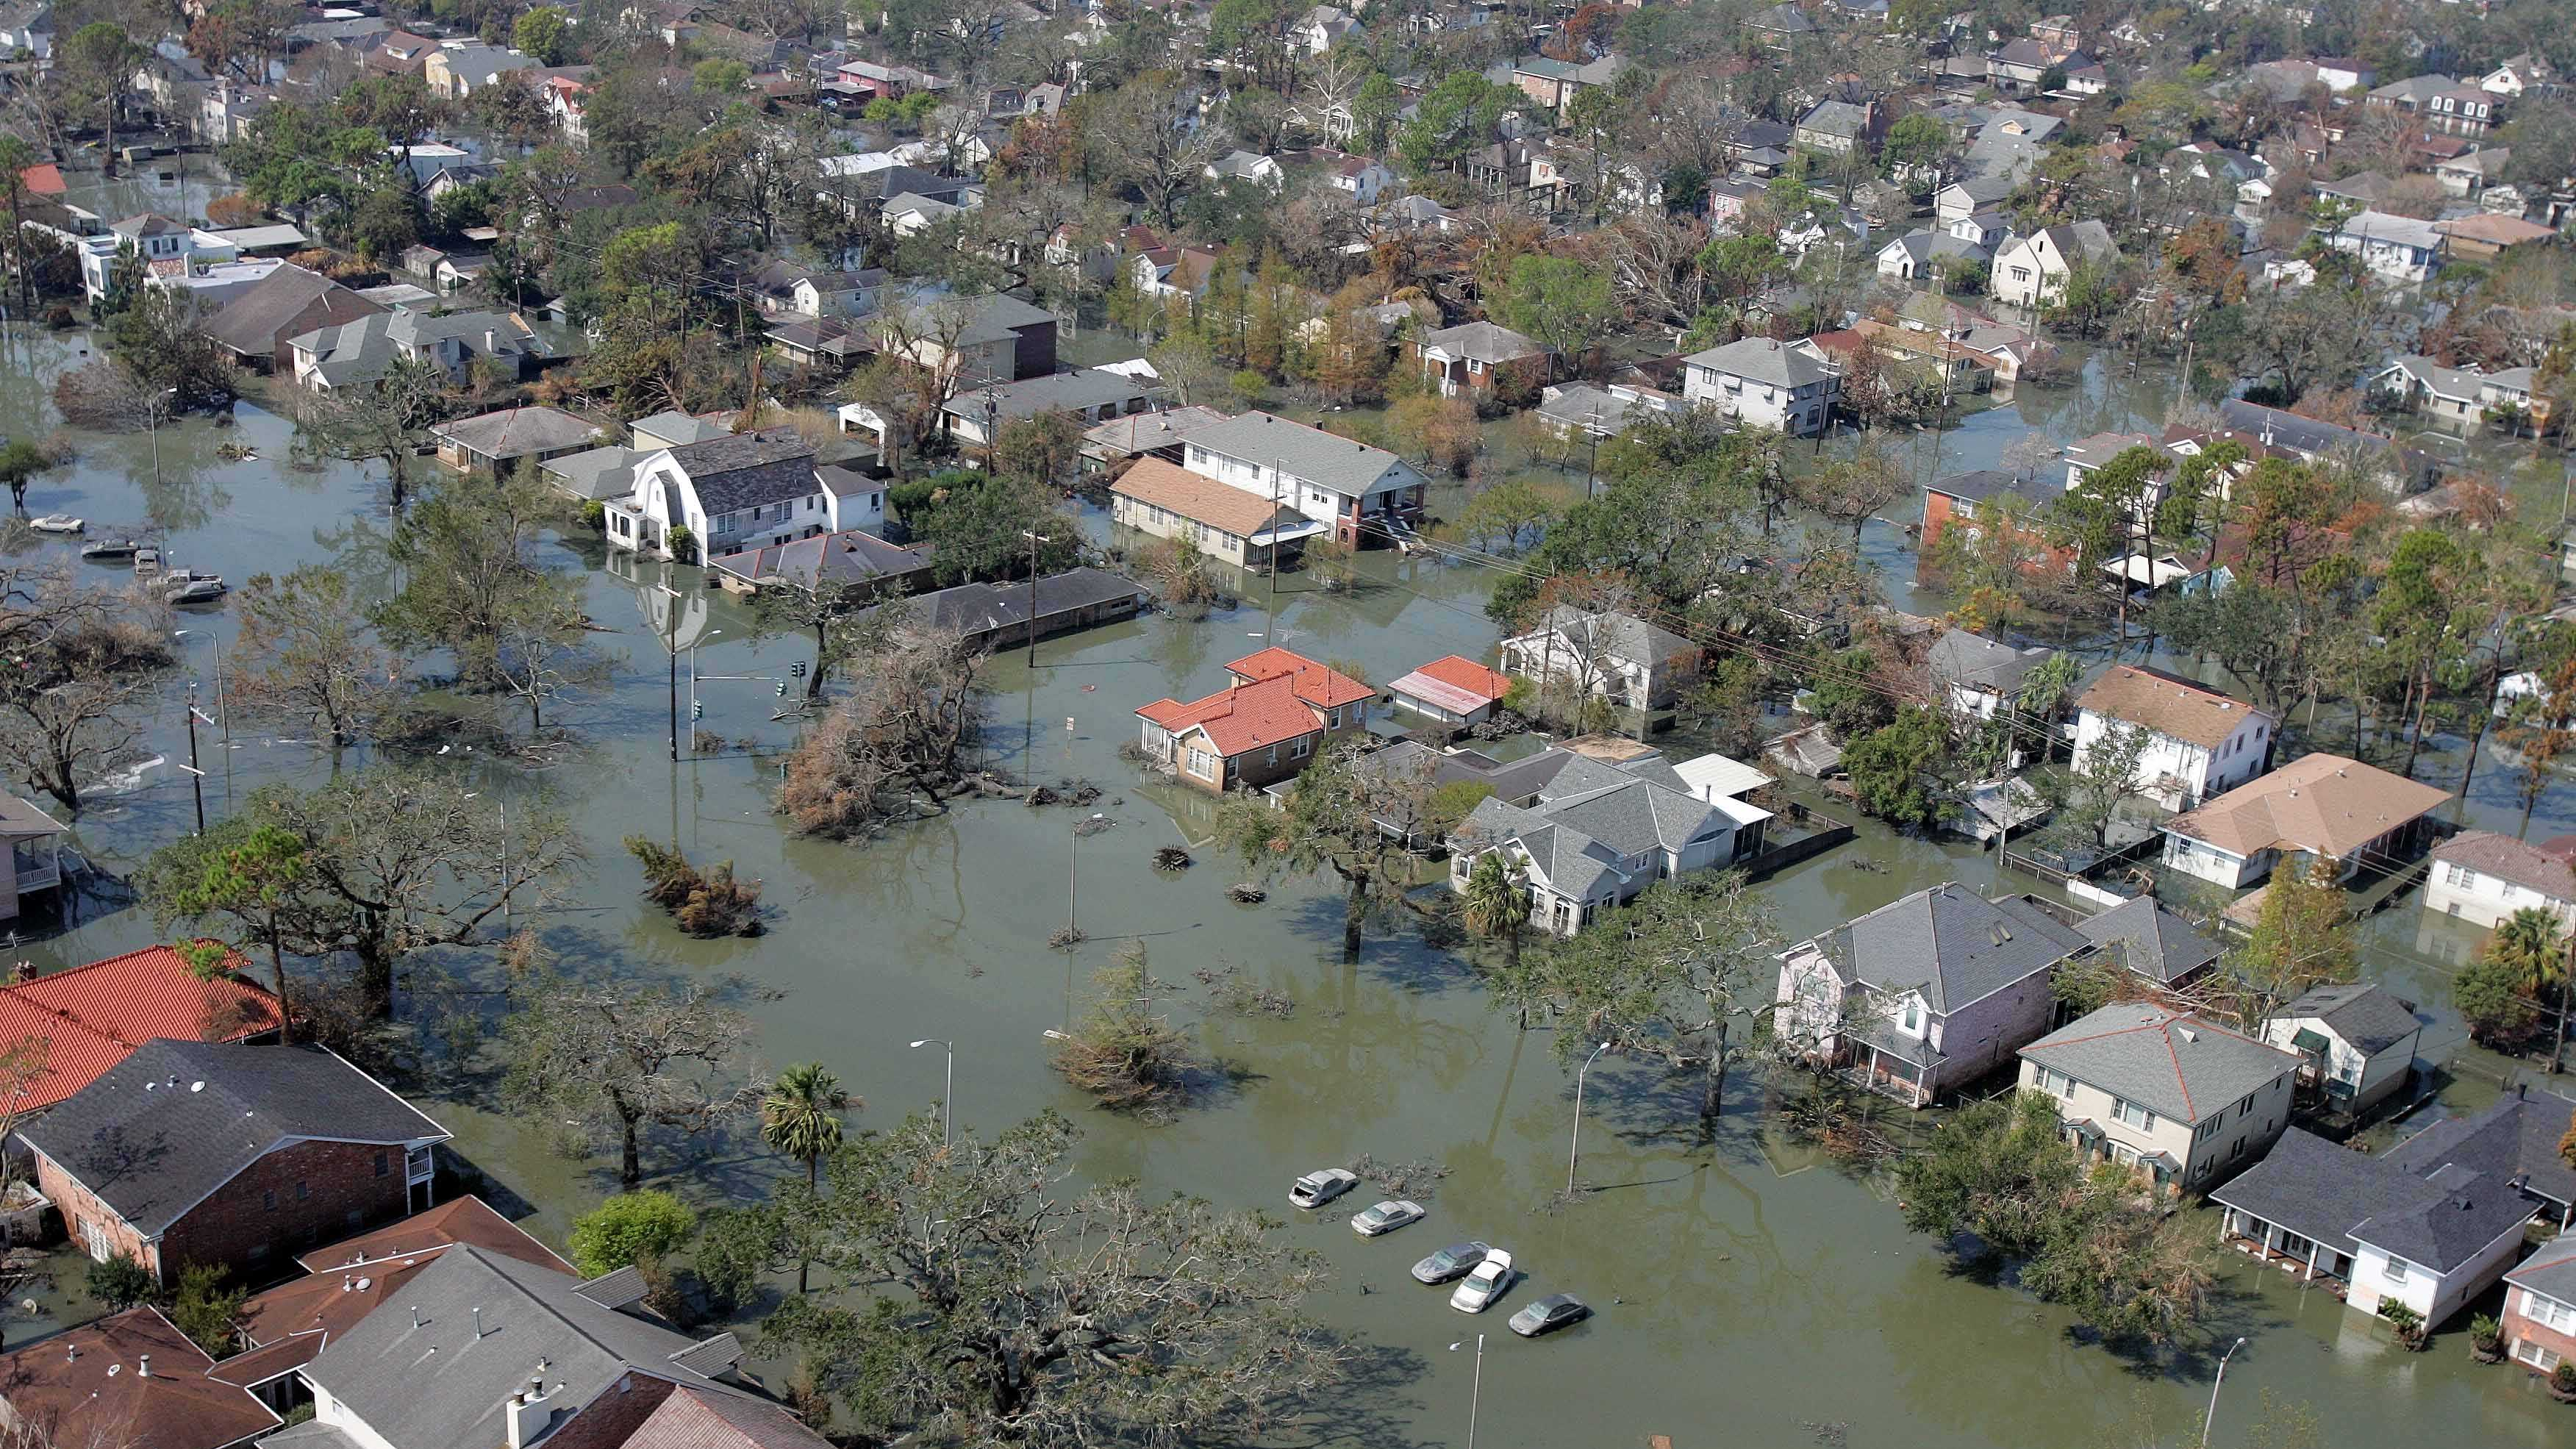 2. On August 29, 2005, hurricane Katrina devastated parts of the Gulf Coast, including New Orleans. A powerful storm surged breached the city's levees, causing catastrophic flooding.